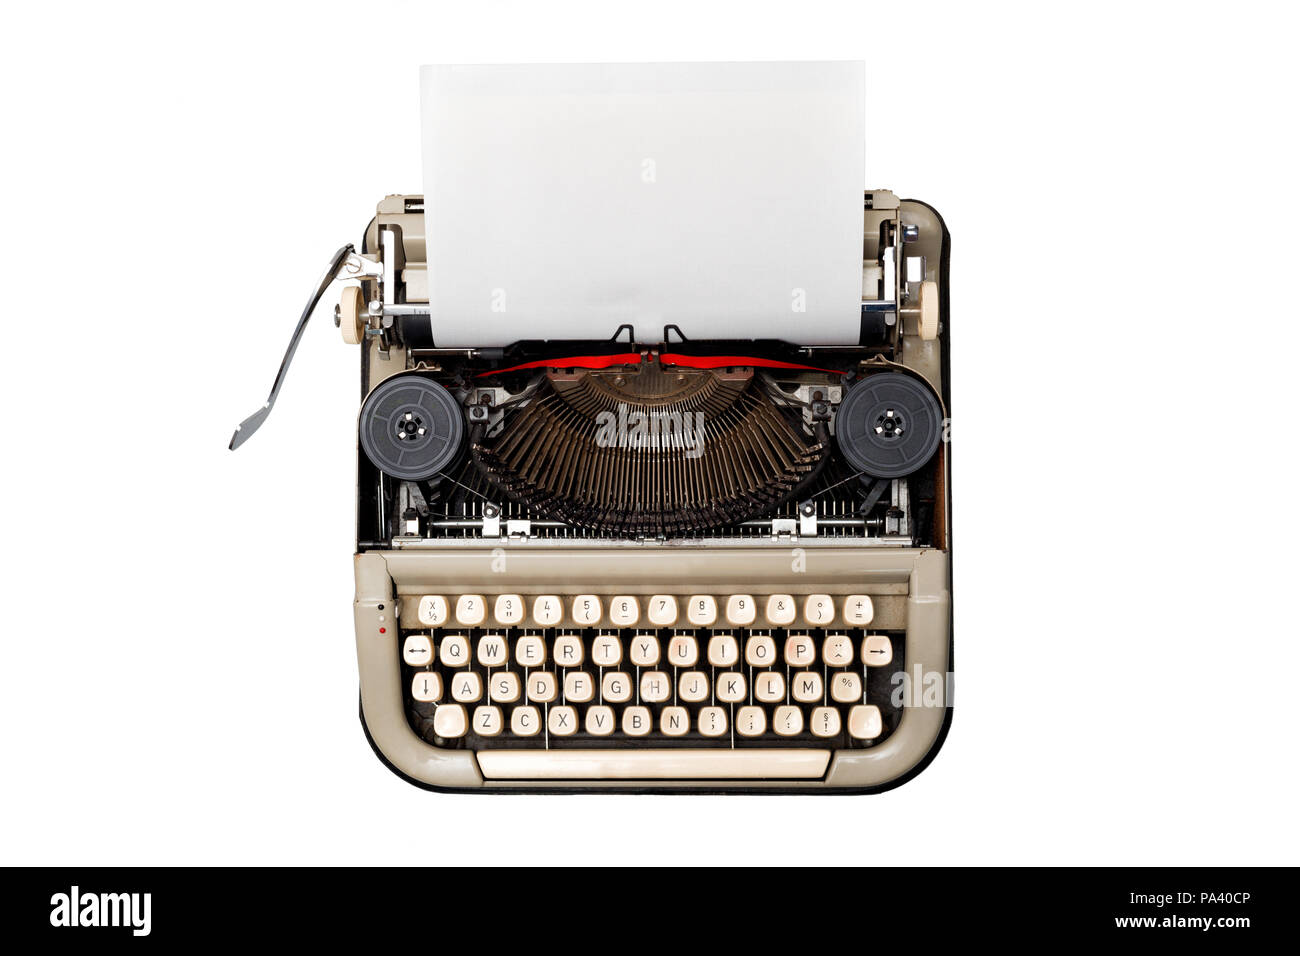 vintage typewriter isolated on white background with blank textured sheet loaded ready to type - Stock Image